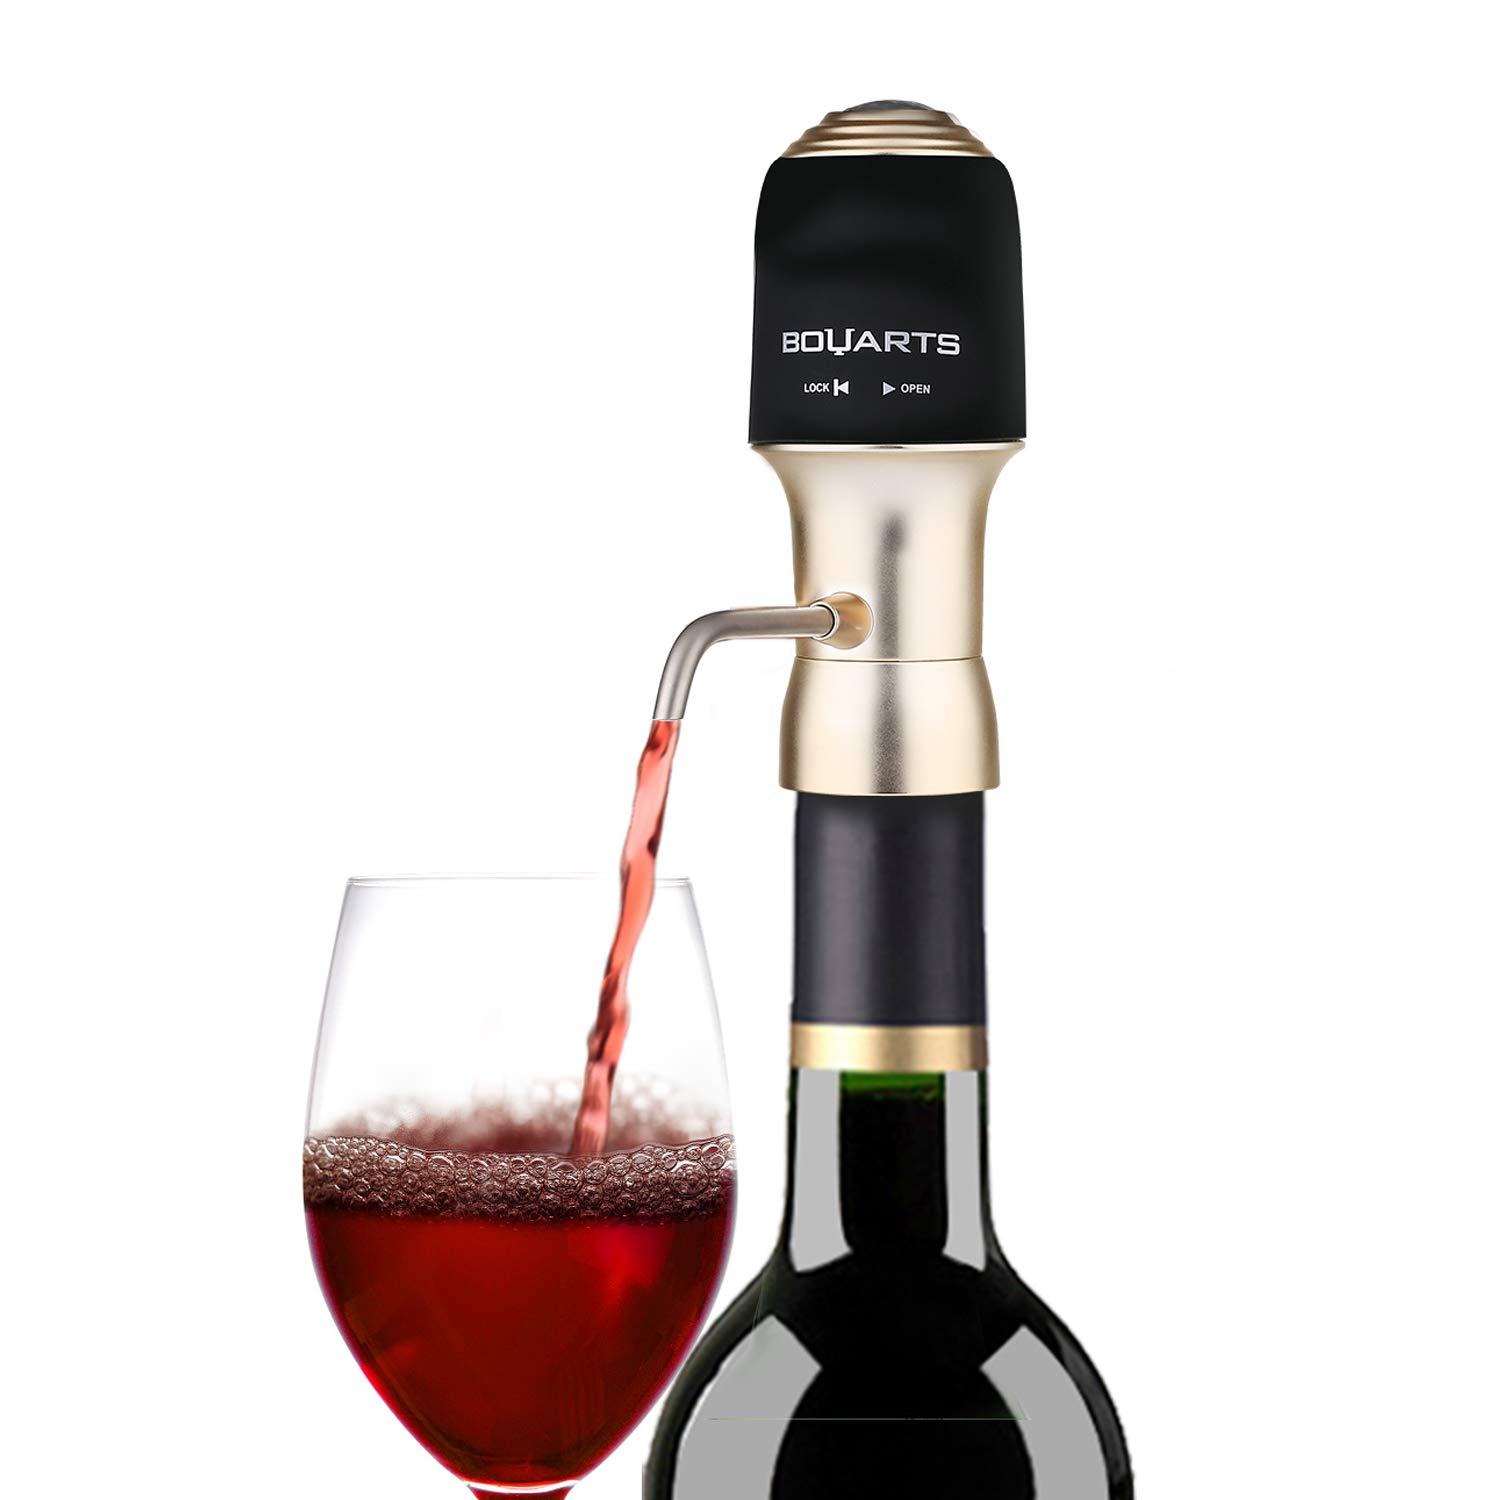 BOUARTS Wine Aerator Wine Gifts, FDA Approved, One-Touch Portable Luxury Wine Air Pressure Aerator with Edible Grade Silicone Material, Convenient Spout, Enhance Wine Flavor of All Ages, Gift Box